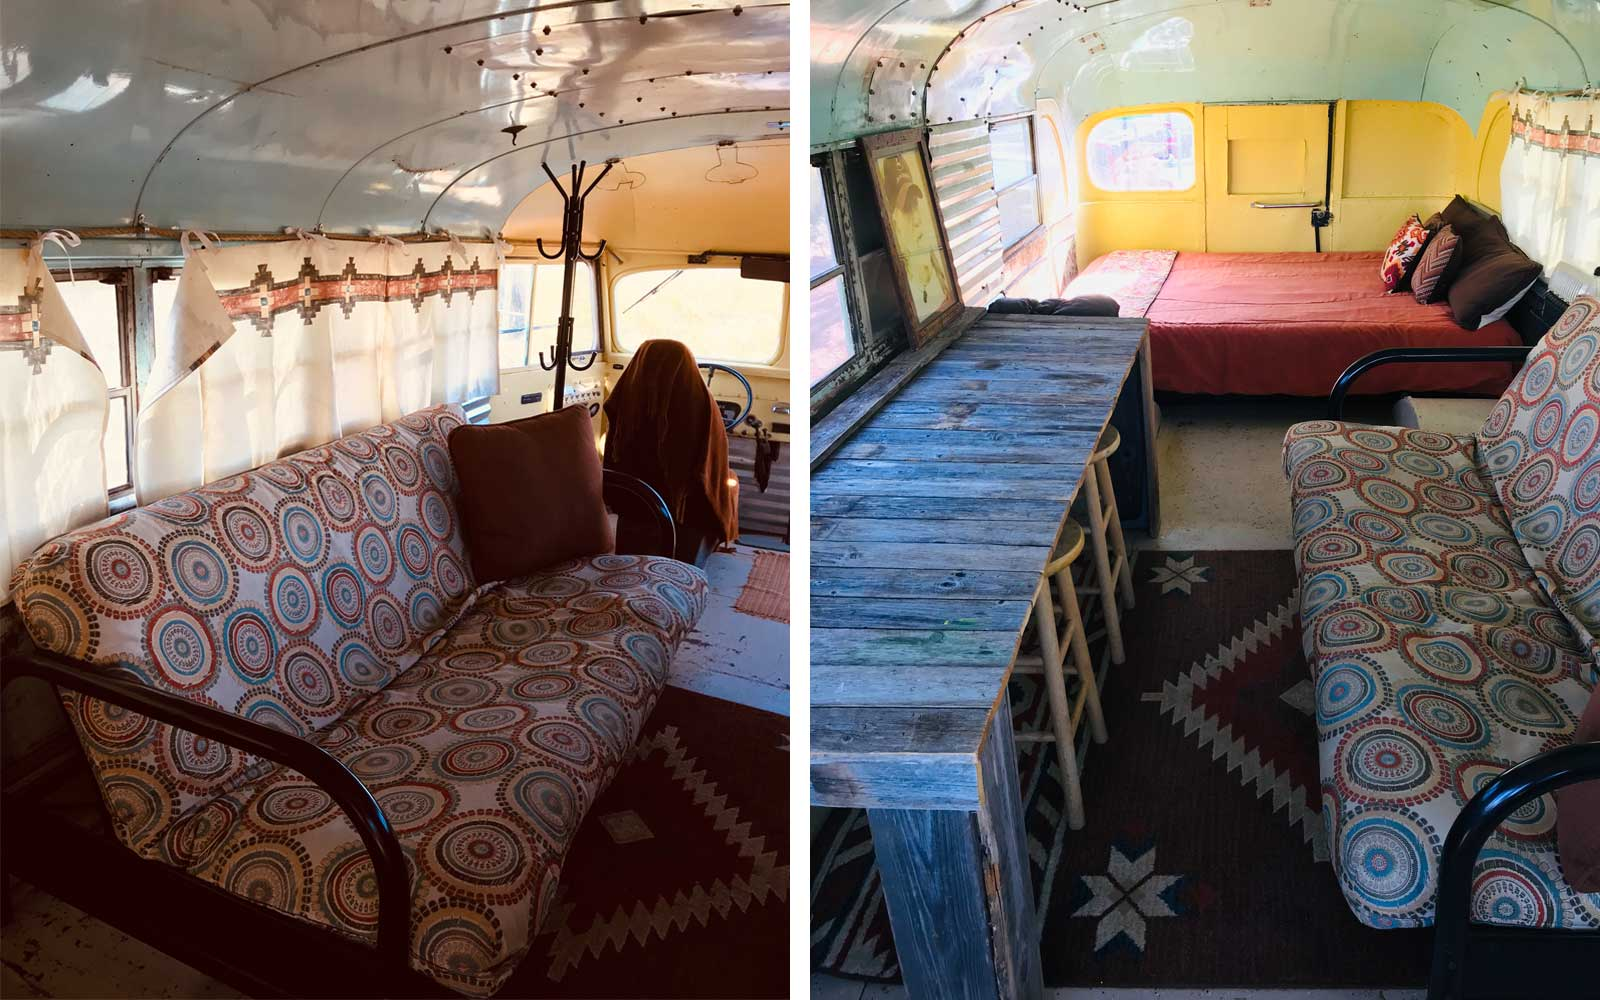 Big Bend National Park Airbnb - Old School Bus